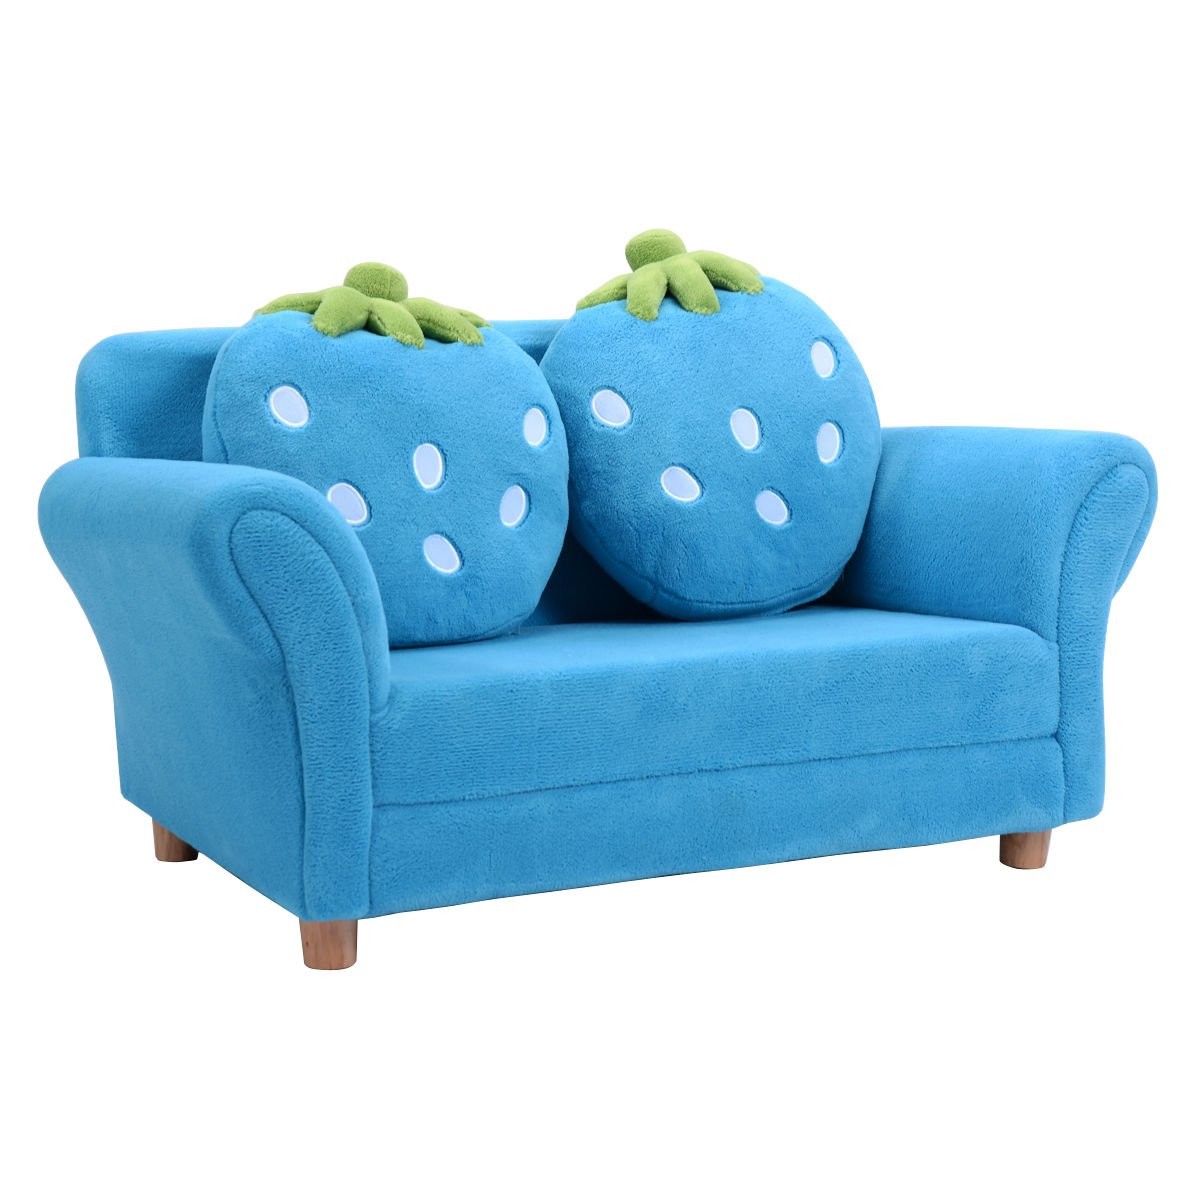 Amazon.com: Costzon Children Sofa, Kids Couch Armrest Chair, Upholstered  Living Room Furniture, Lounge Bed With Two Strawberry Pillows(Blue):  Kitchen U0026 ...